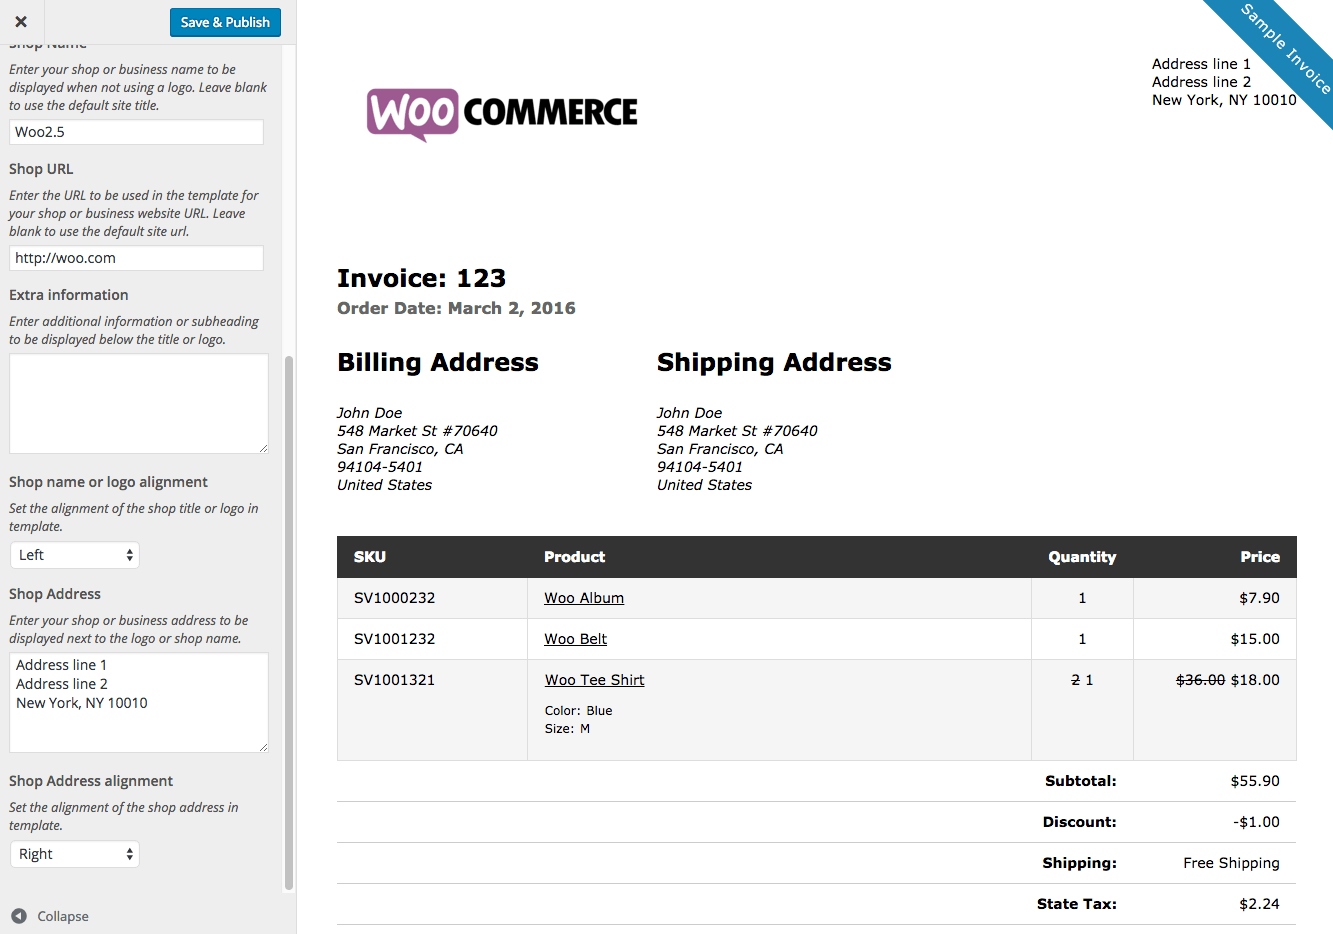 Hius  Surprising Woocommerce Print Invoices Amp Packing Lists  Woocommerce Docs With Remarkable Woocommerce Print Invoices  Packing Lists Customizer With Lovely Amount Receipt Format Also Private Car Sale Receipt Template Free In Addition Receipt Processing And Store Receipt Maker As Well As Pay By Phone Parking Receipt Additionally Receipt Voucher Template From Docswoocommercecom With Hius  Remarkable Woocommerce Print Invoices Amp Packing Lists  Woocommerce Docs With Lovely Woocommerce Print Invoices  Packing Lists Customizer And Surprising Amount Receipt Format Also Private Car Sale Receipt Template Free In Addition Receipt Processing From Docswoocommercecom